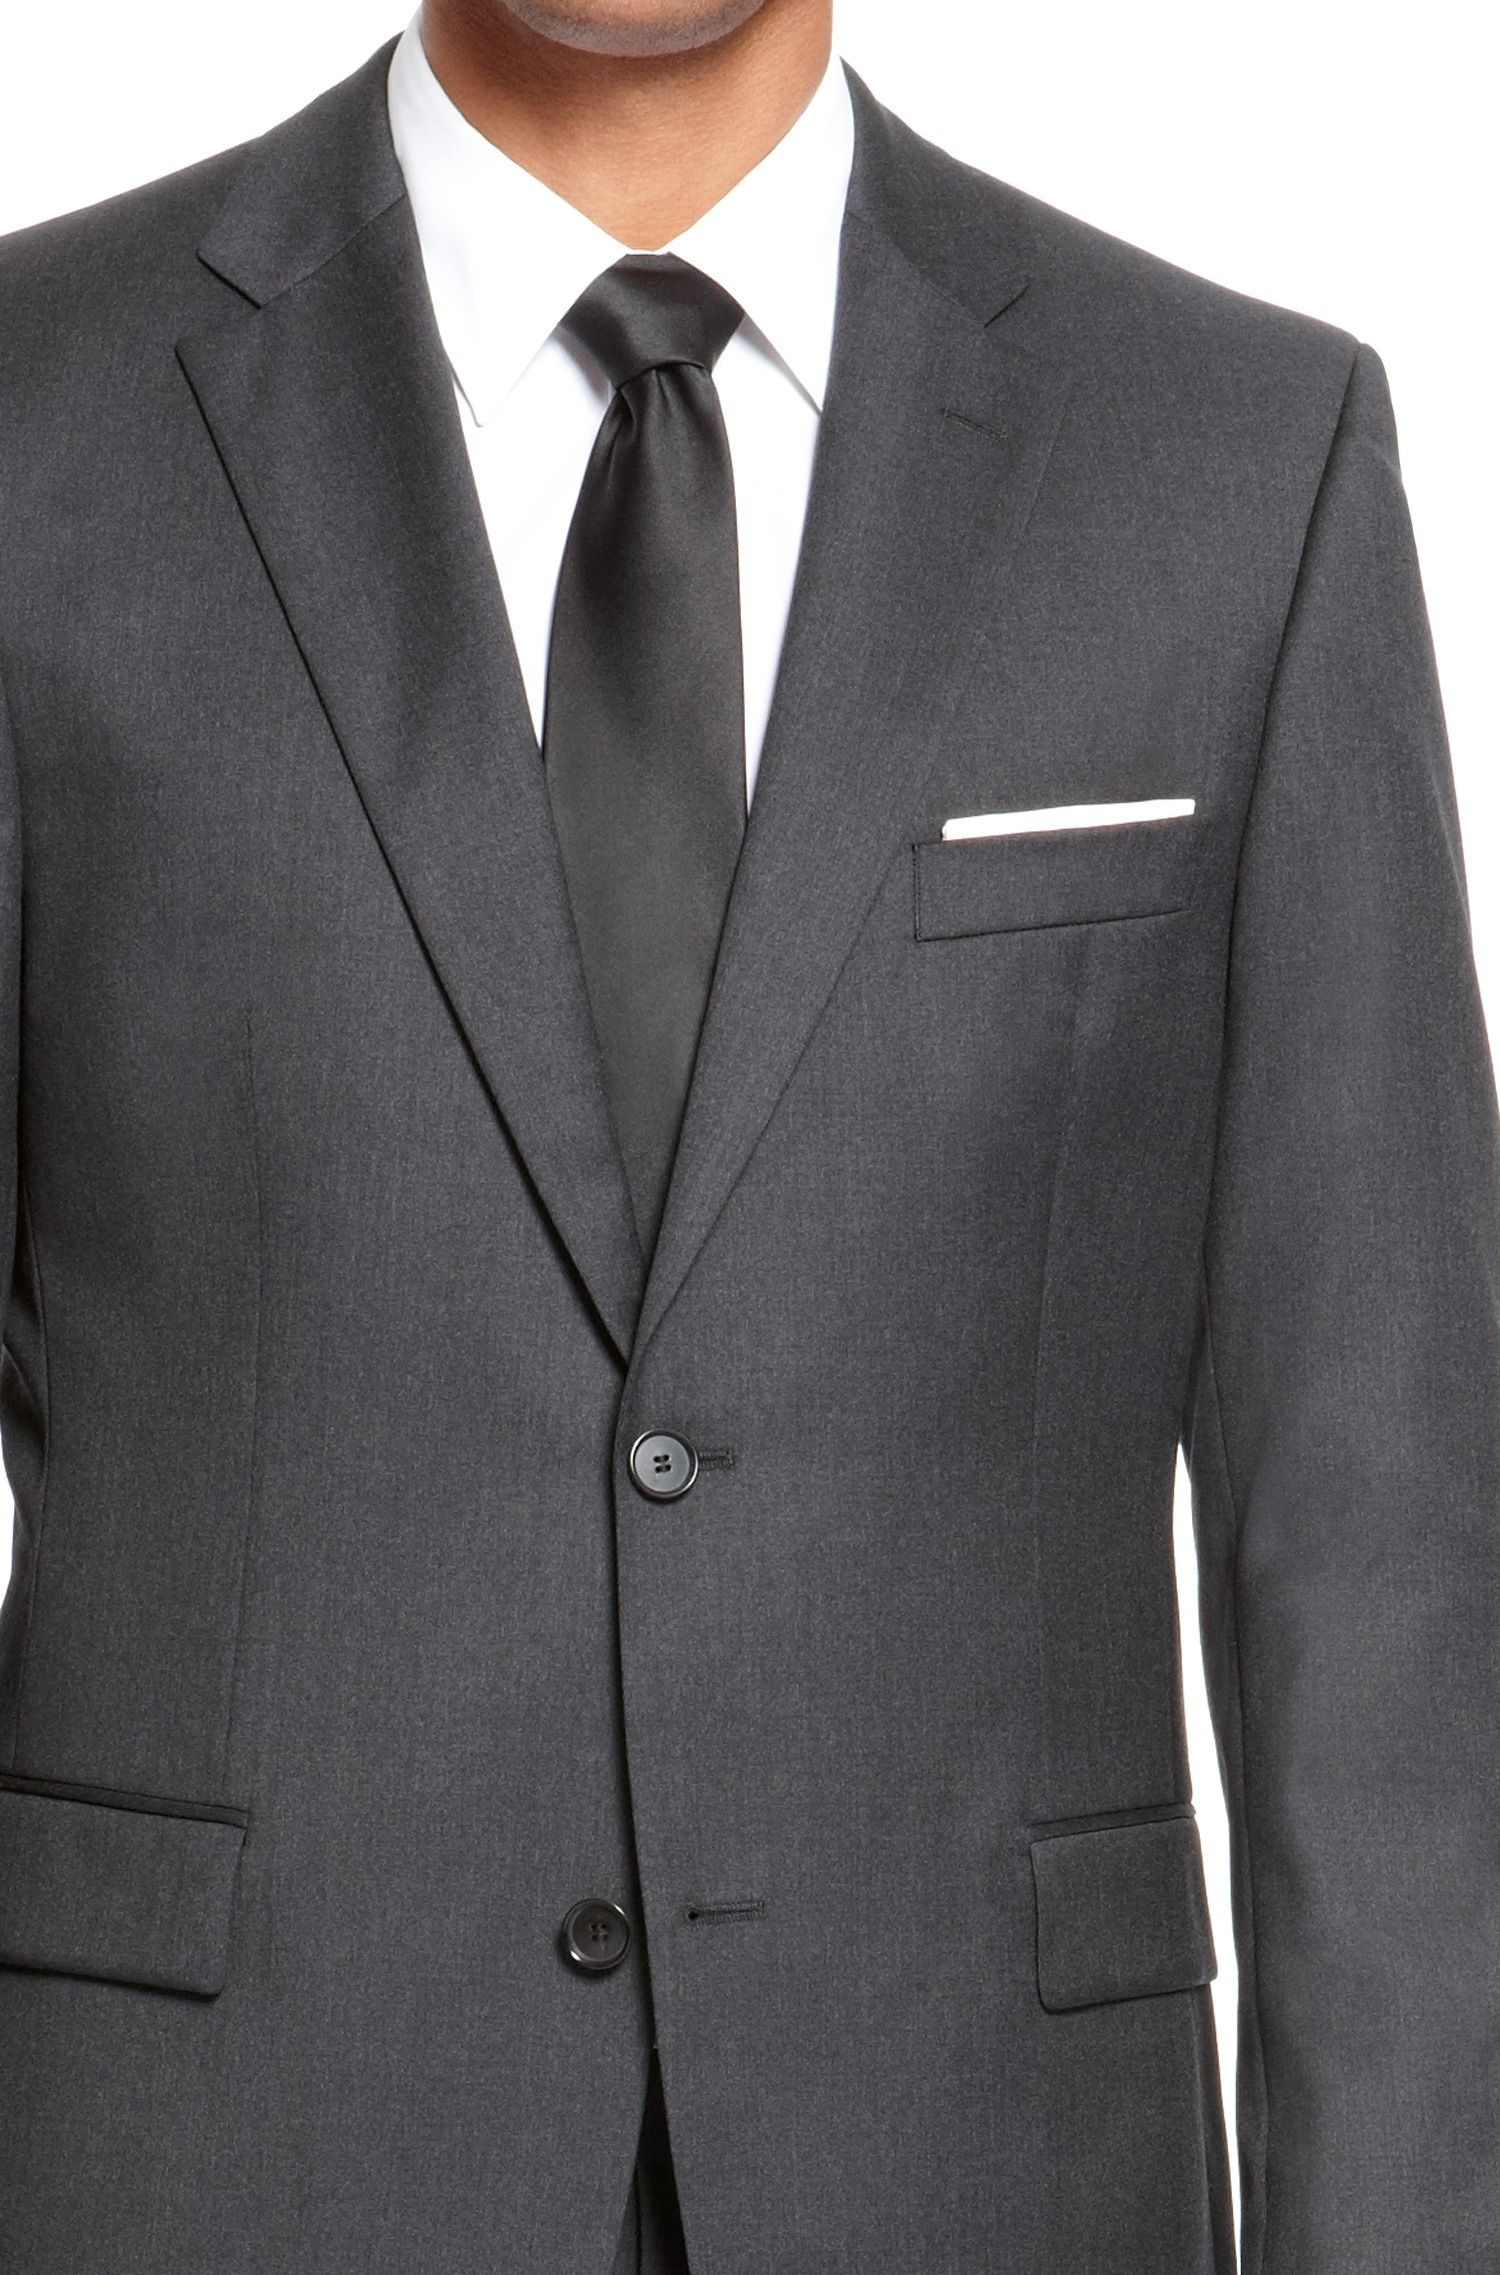 5527ea15 BOSS 'Pasolini/Movie' | Comfort Fit, Super 110 Virgin Wool Suit Dark Grey  free shipping